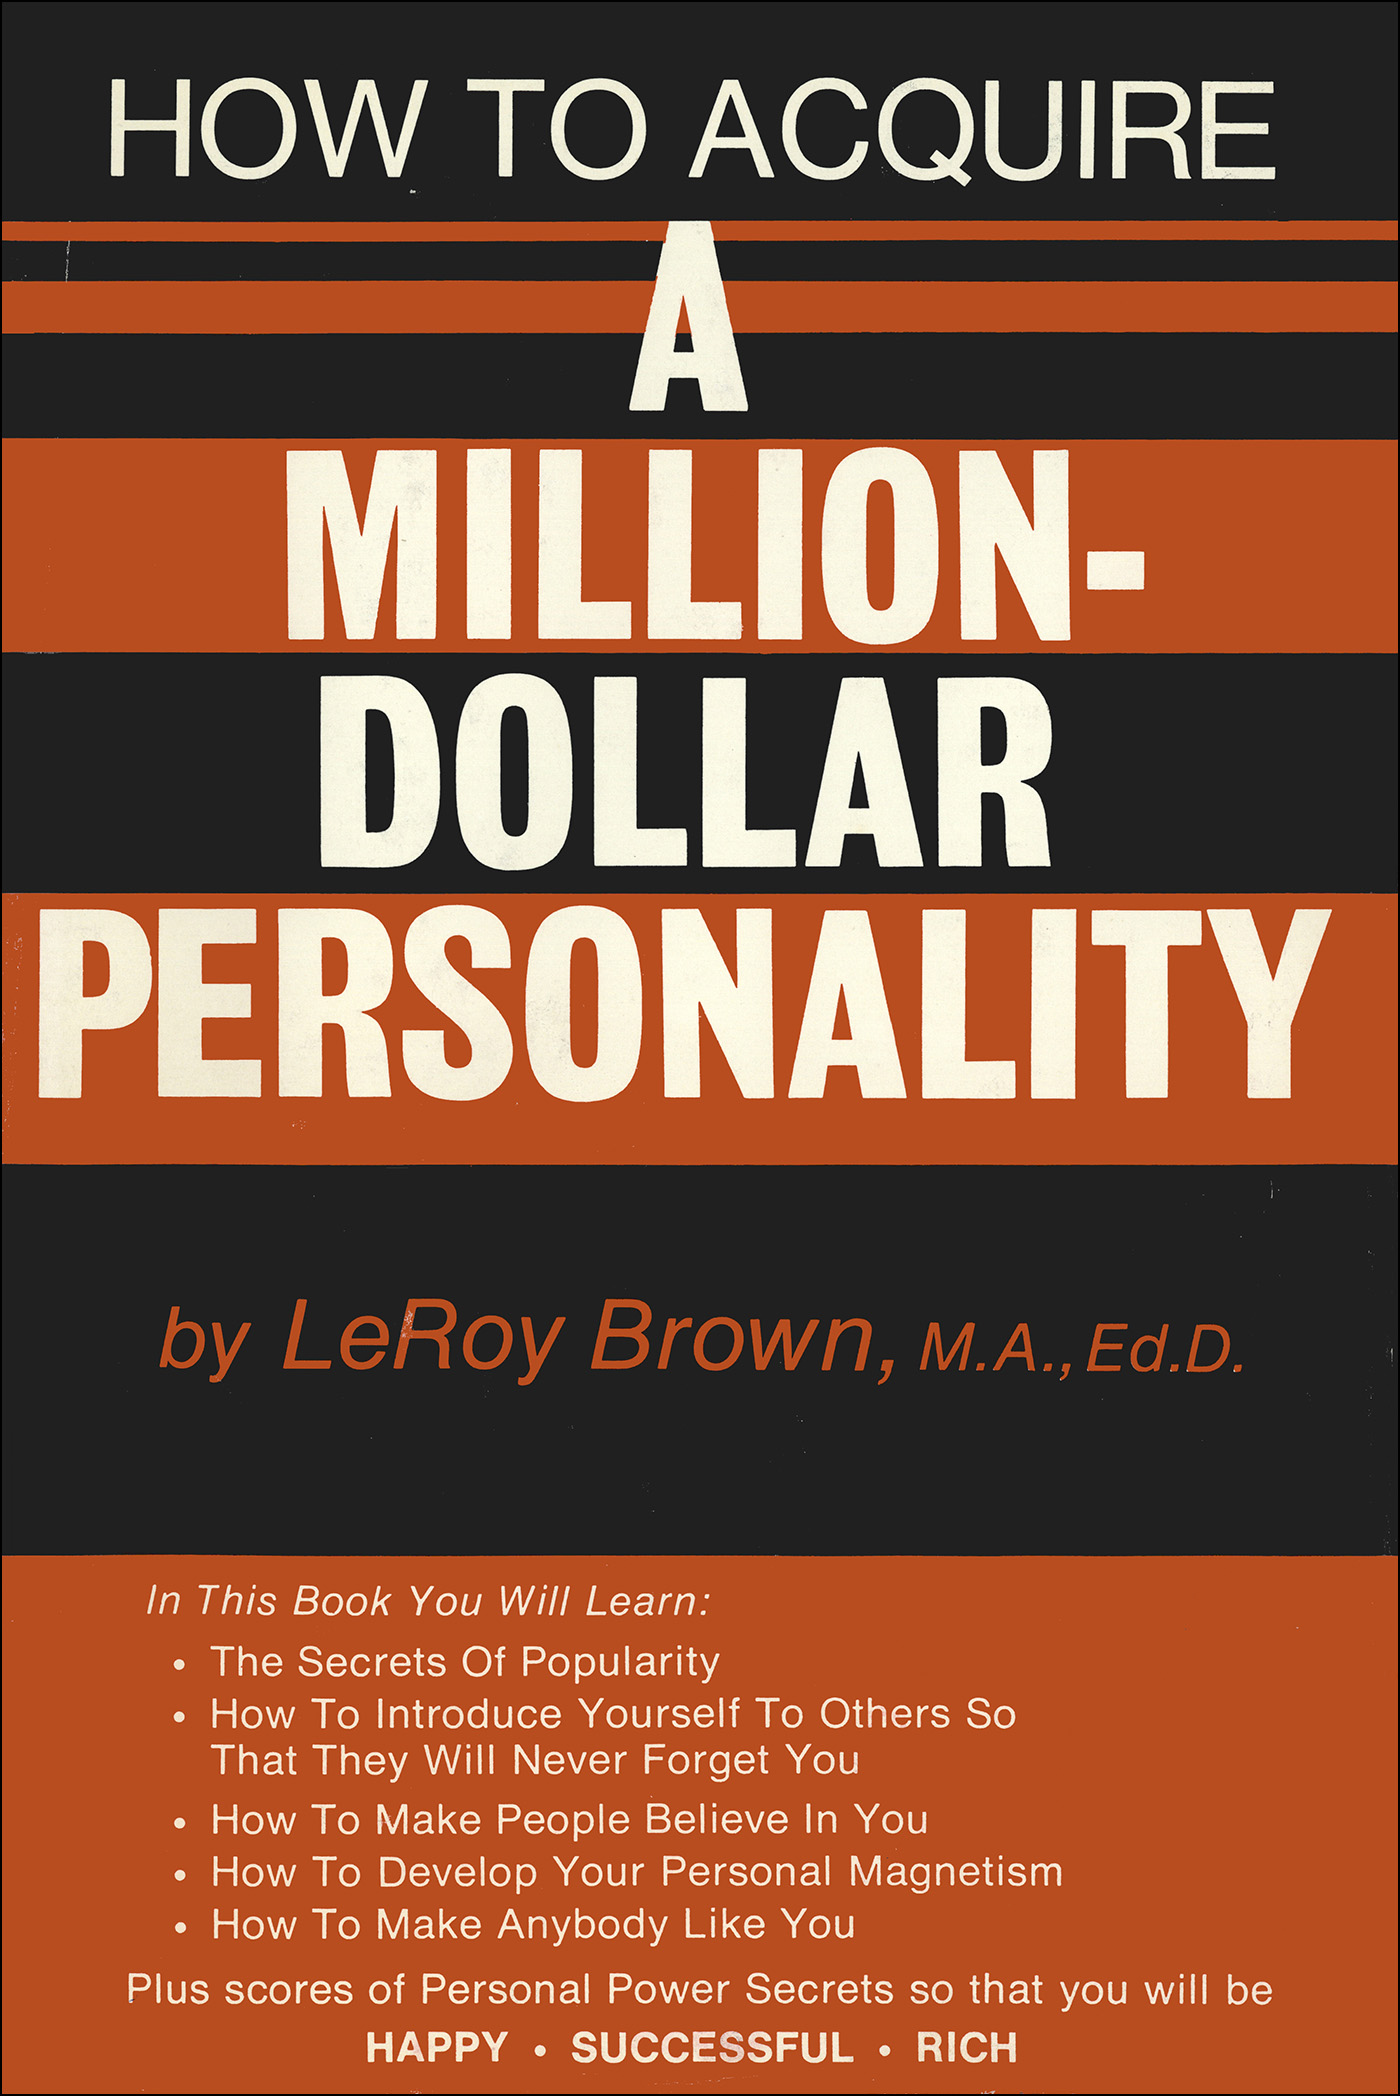 How To Acquire A Million-Dollar Personality